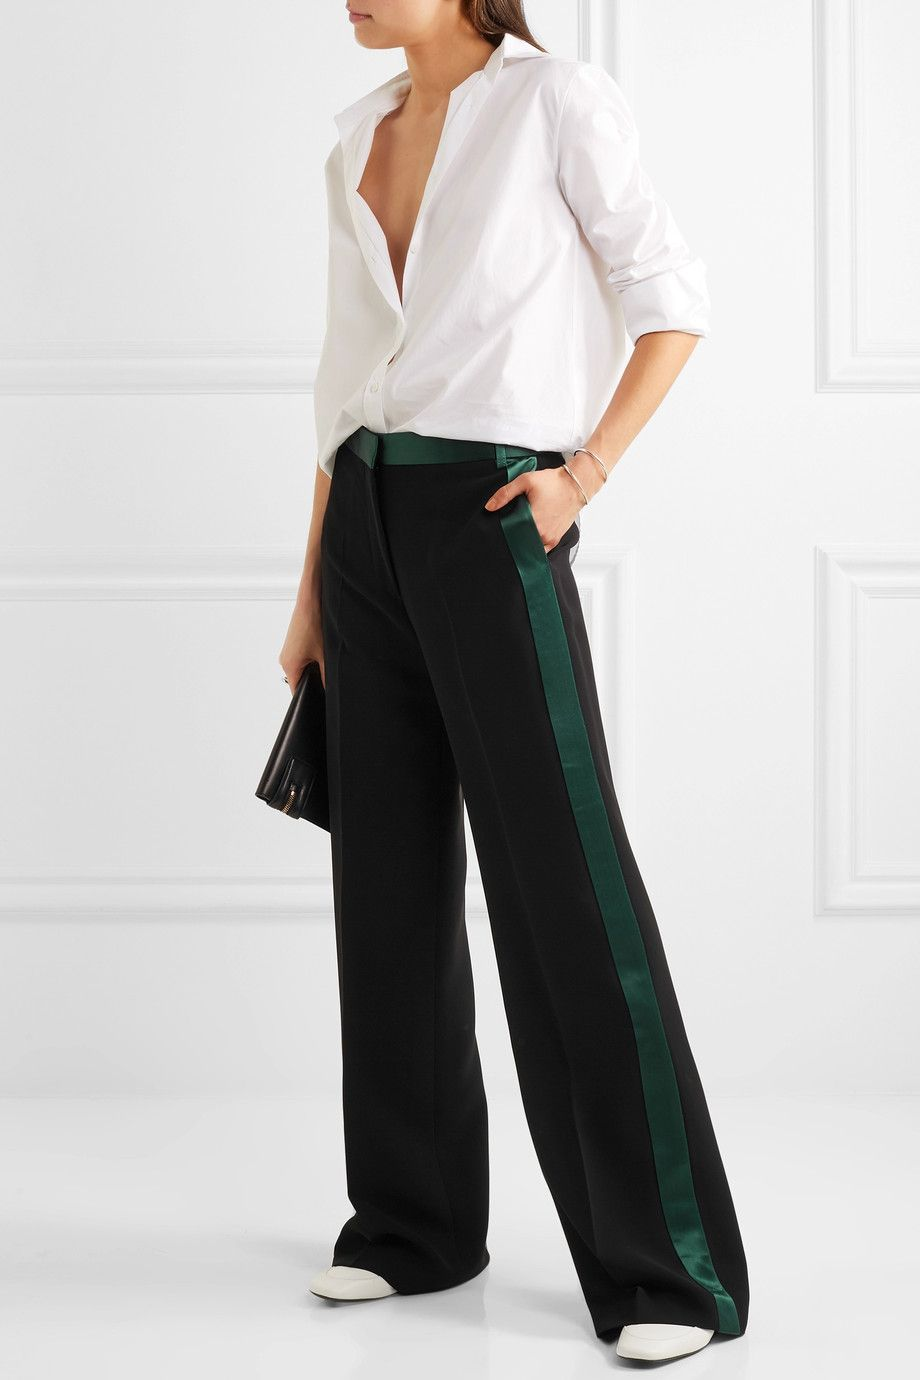 Victoria, Victoria Beckham Woman Crepe Tapered Pants Yellow Size 12 Victoria Beckham